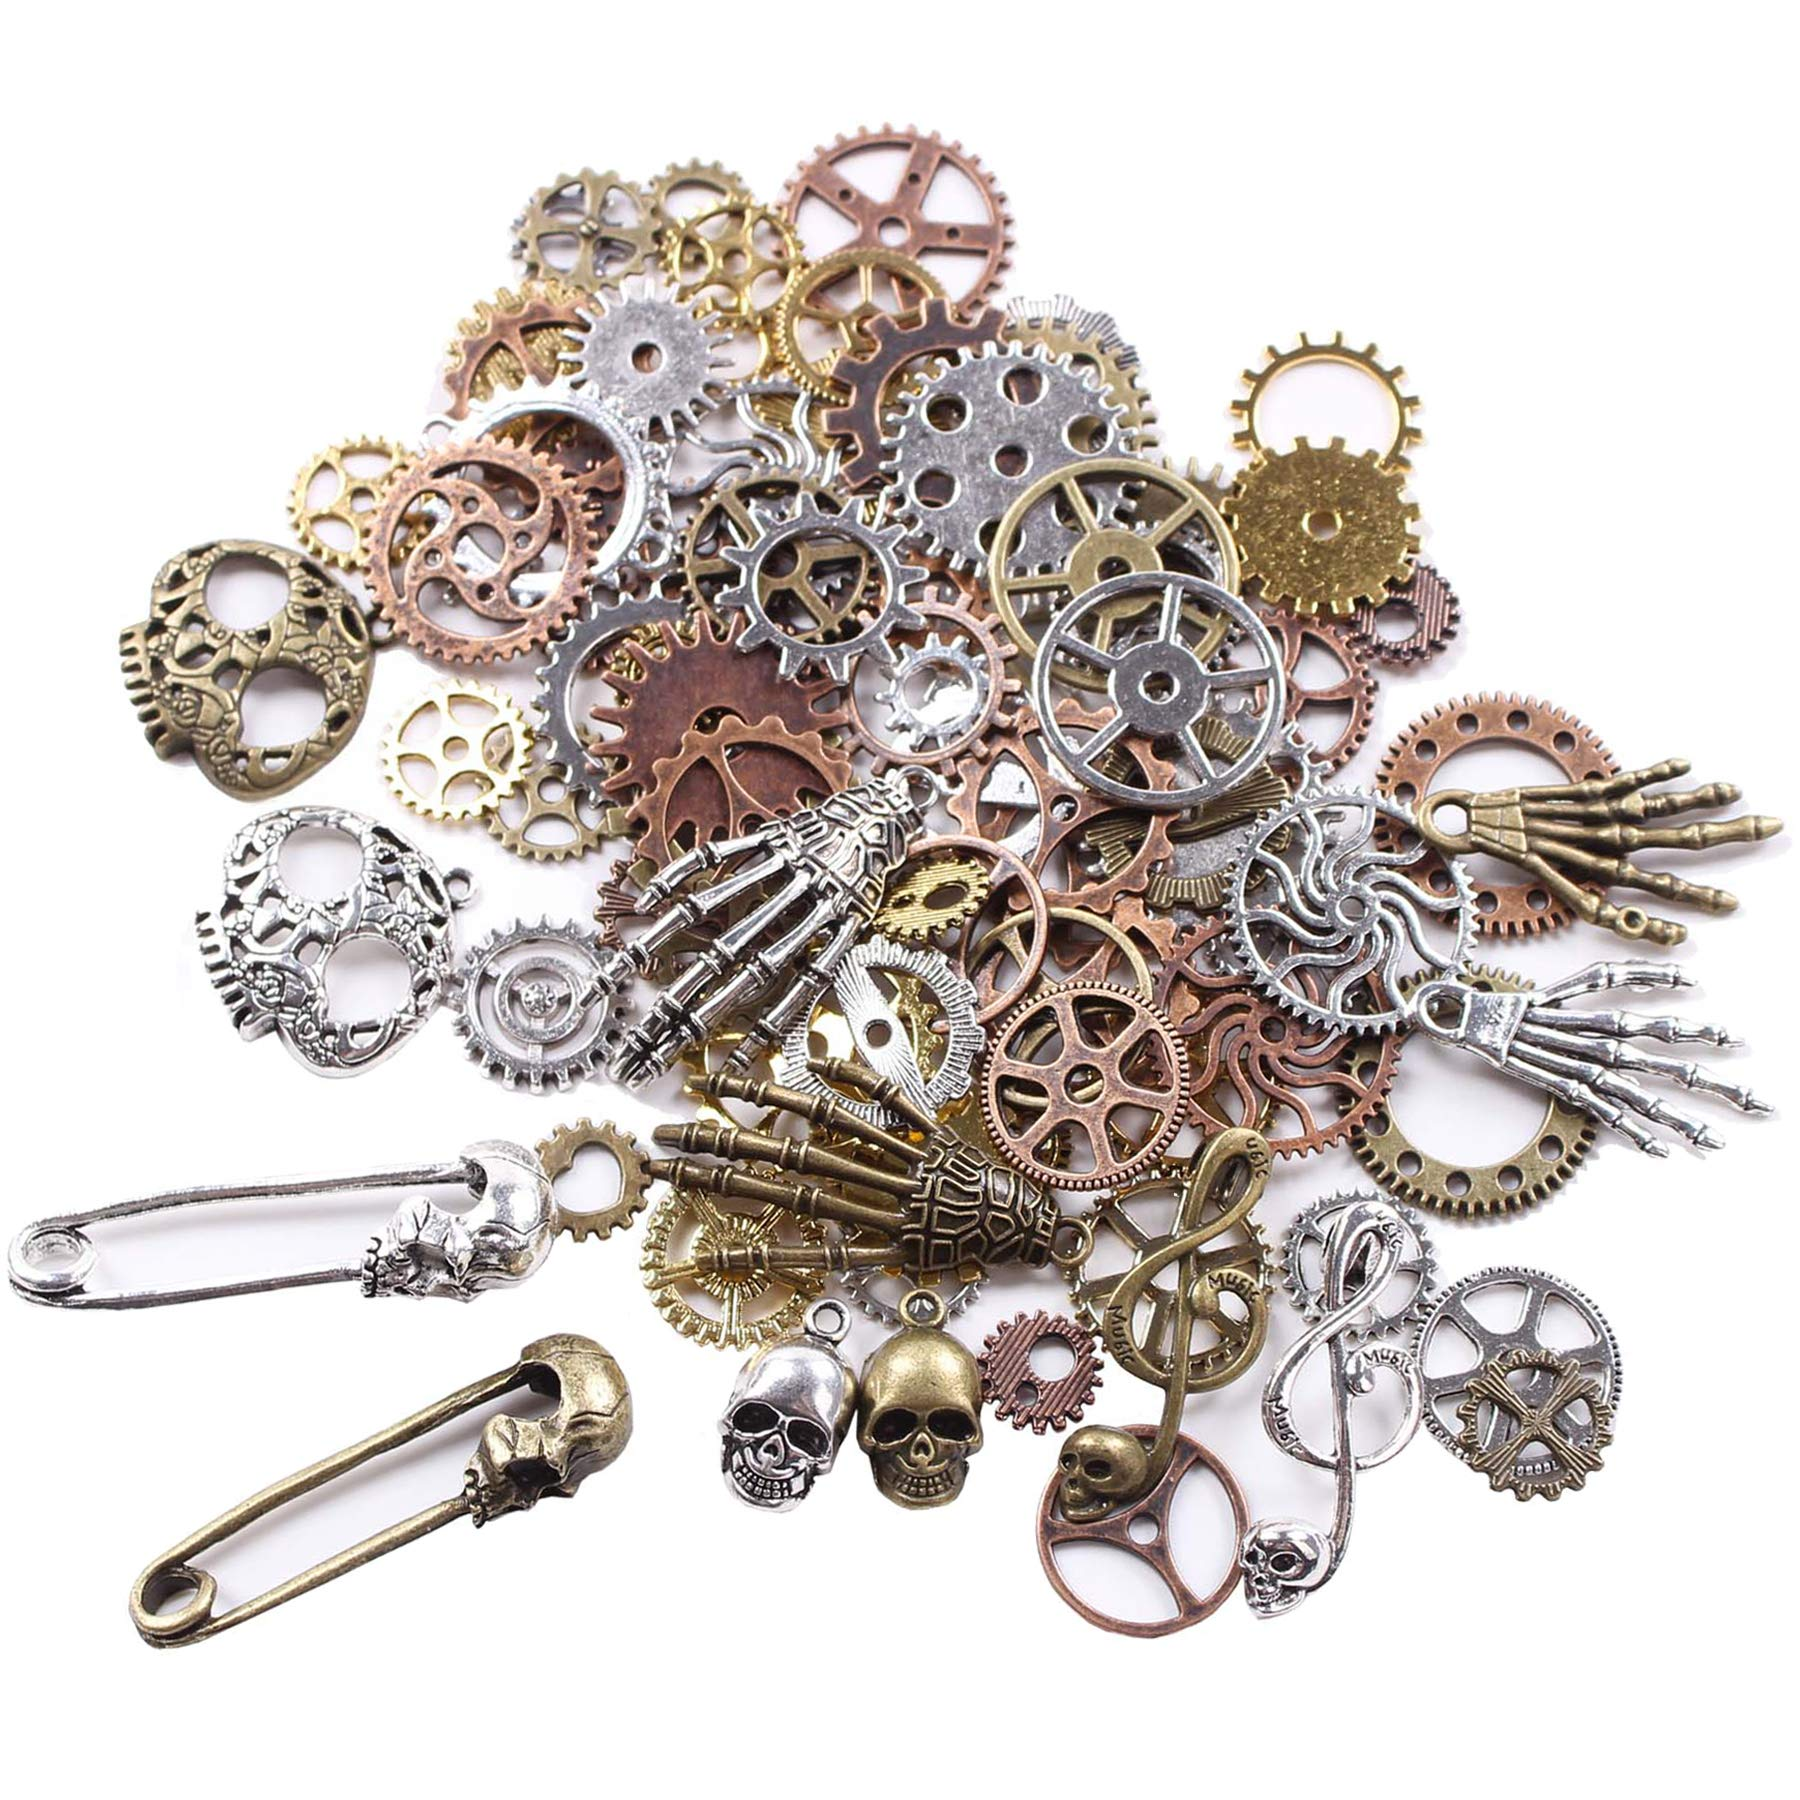 140 Gram (Approx 92pcs) DIY Assorted Color Antique Metal Steampunk Watch Gear Cog Wheel Skull Musical Note Skull Hand Safety Pin Charms Pendant for Crafting, Jewelry Making Accessory